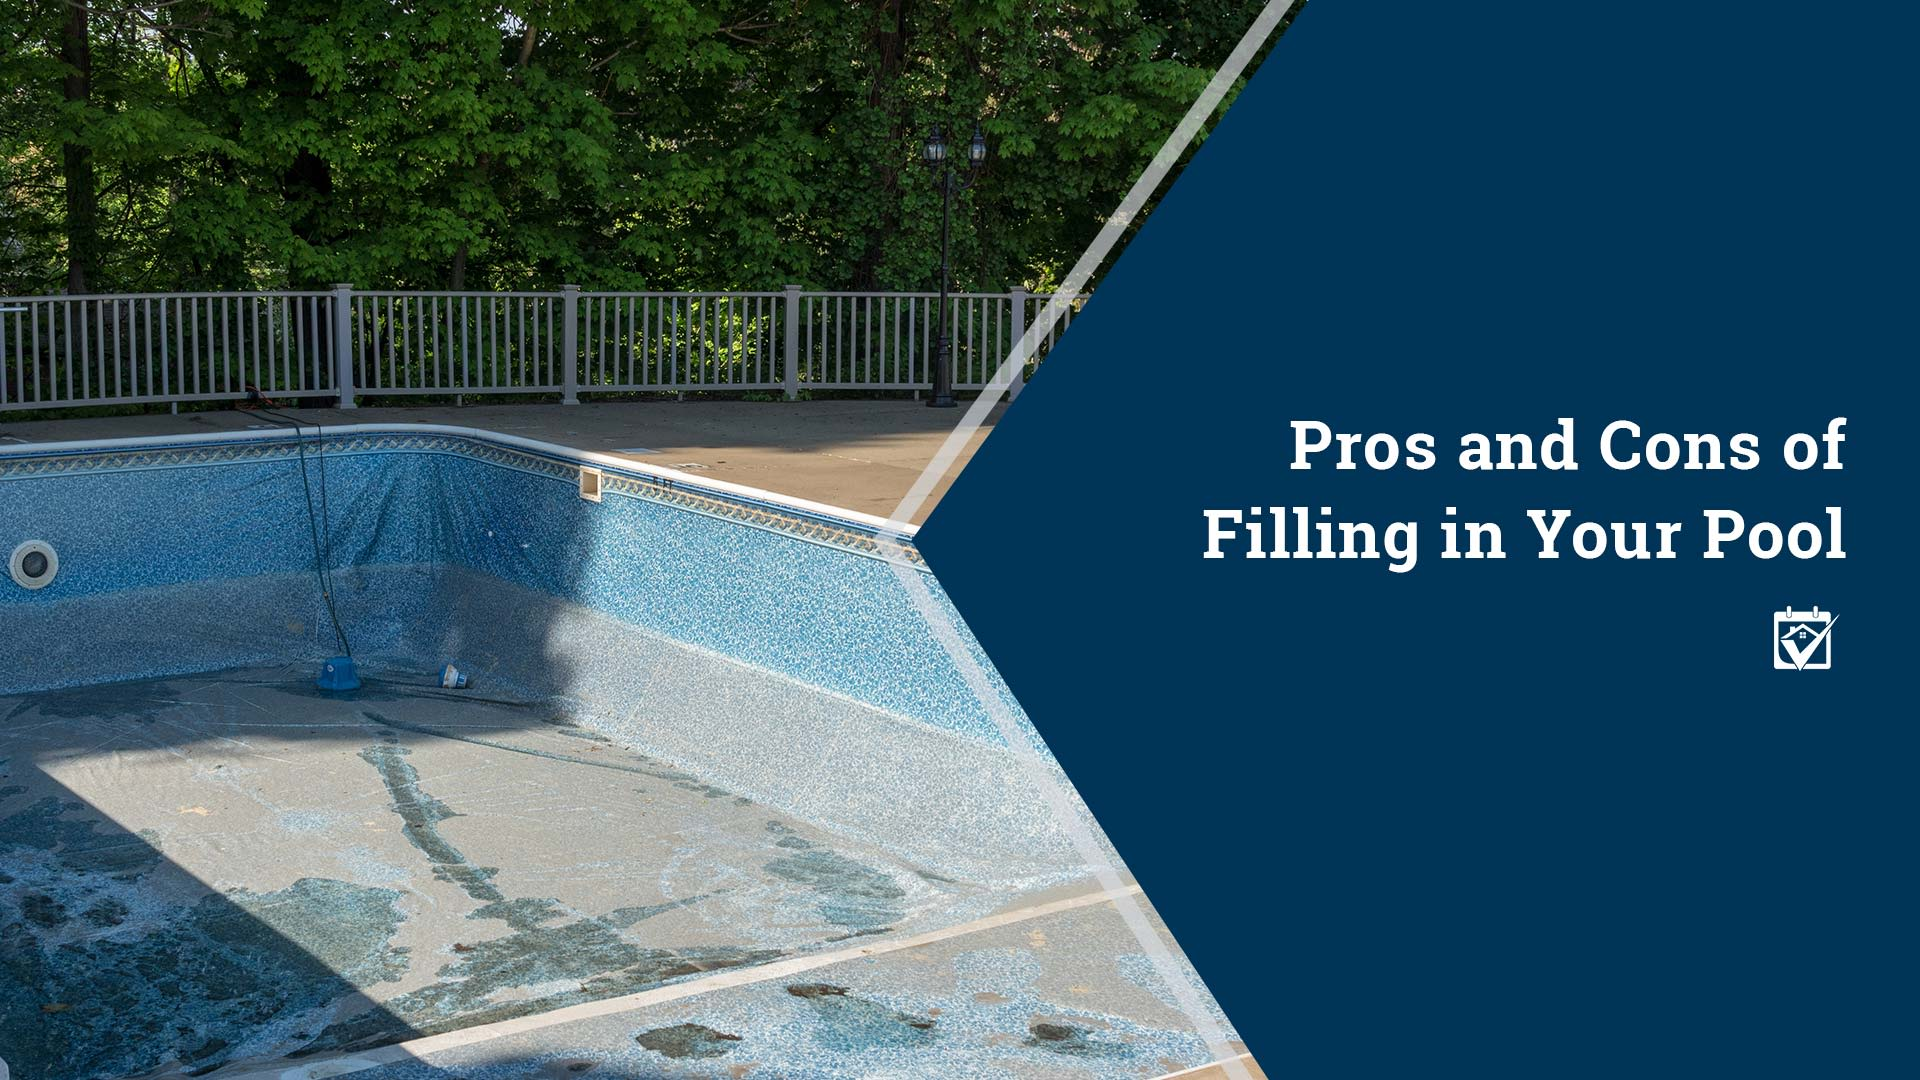 Pros and Cons of Filling in Your Pool